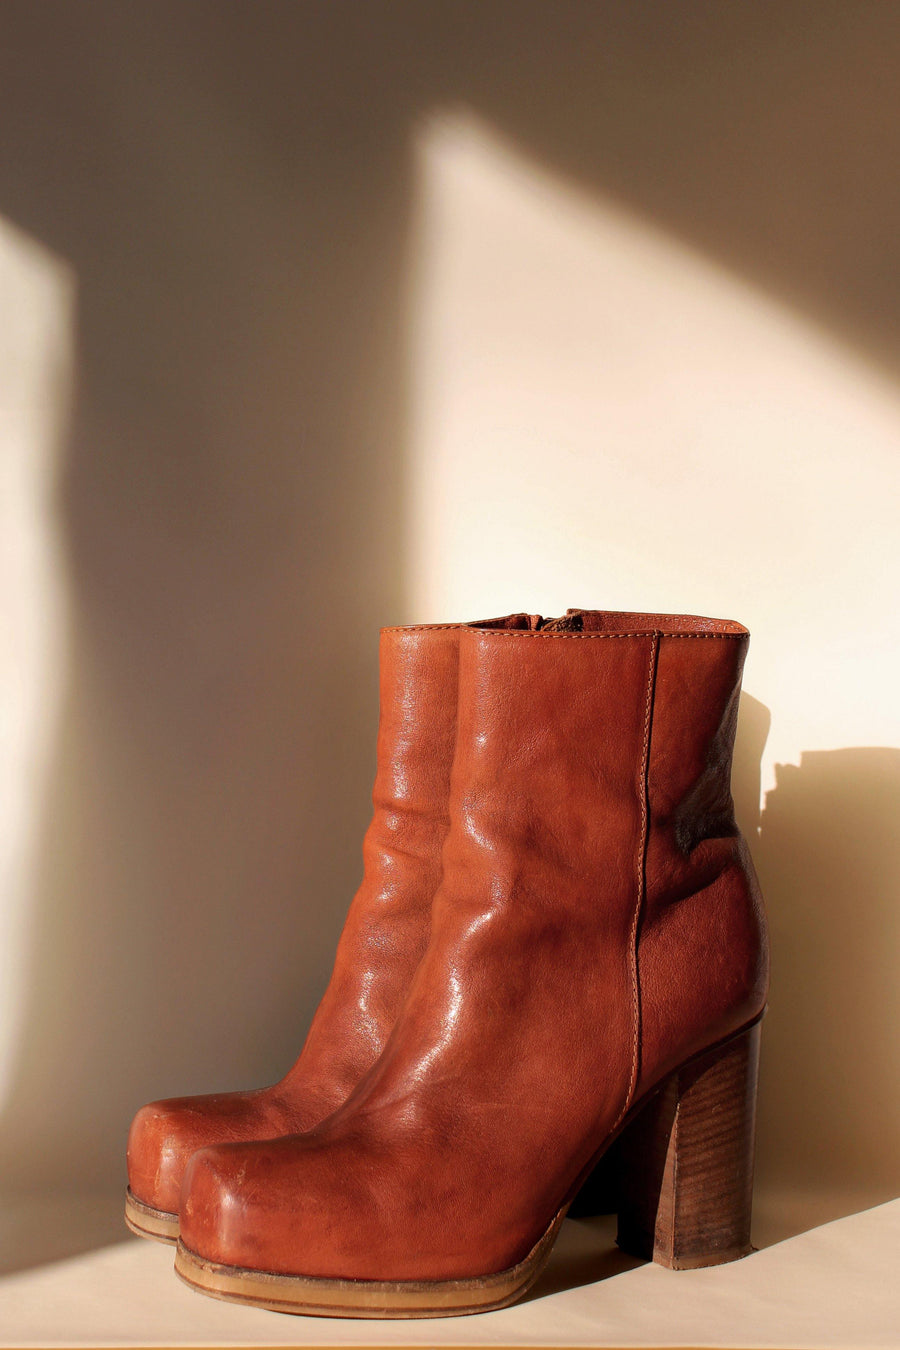 ACNE STUDIOS Rider Boots - The Good Store Berlin